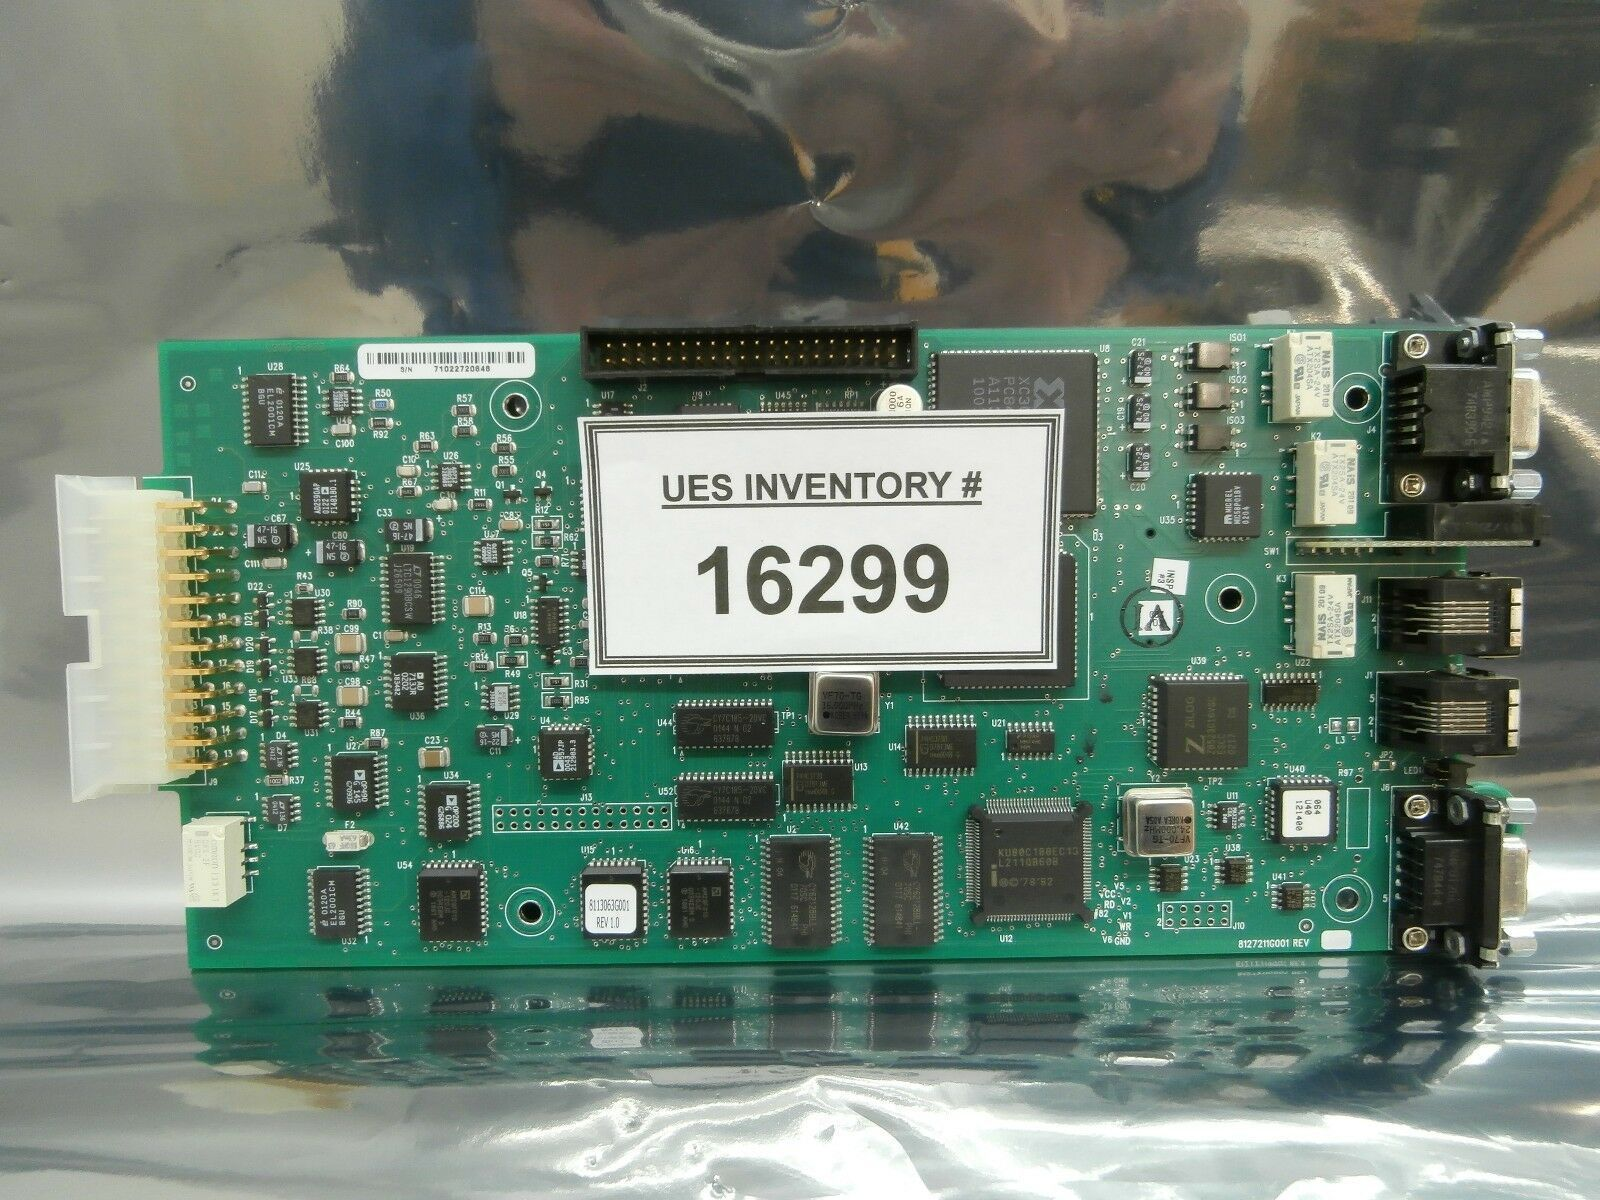 Helix Technology 8127211G001 Logic Board PCB 8127210G001 CTI-Cryogenics Used